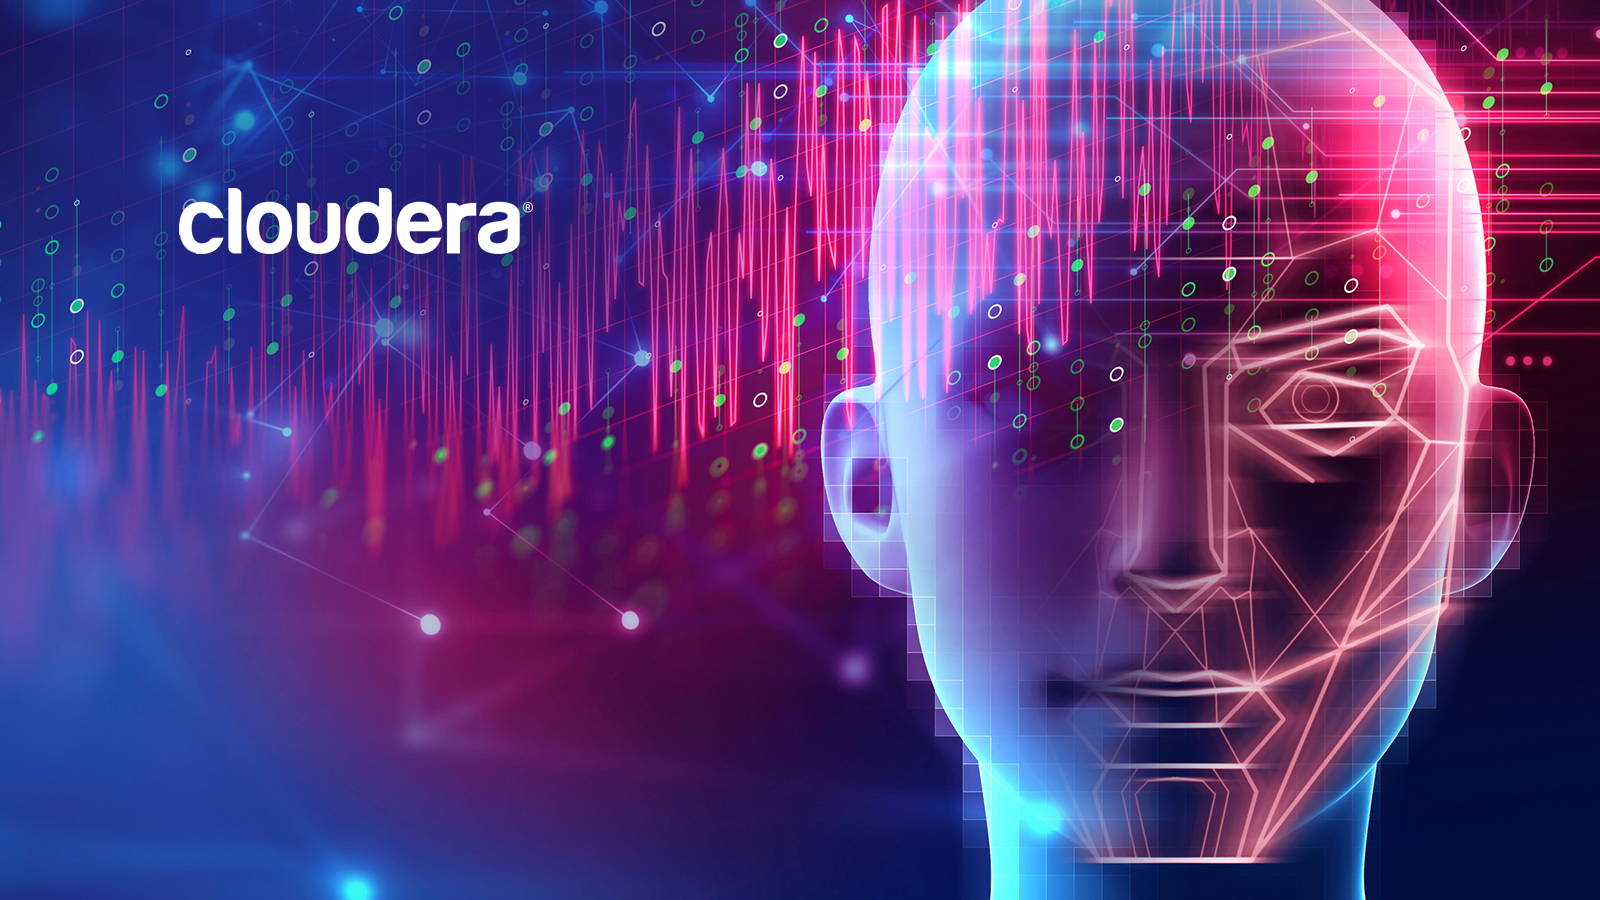 Cloudera annuncia una nuova piattaforma di machine learning cloud-native